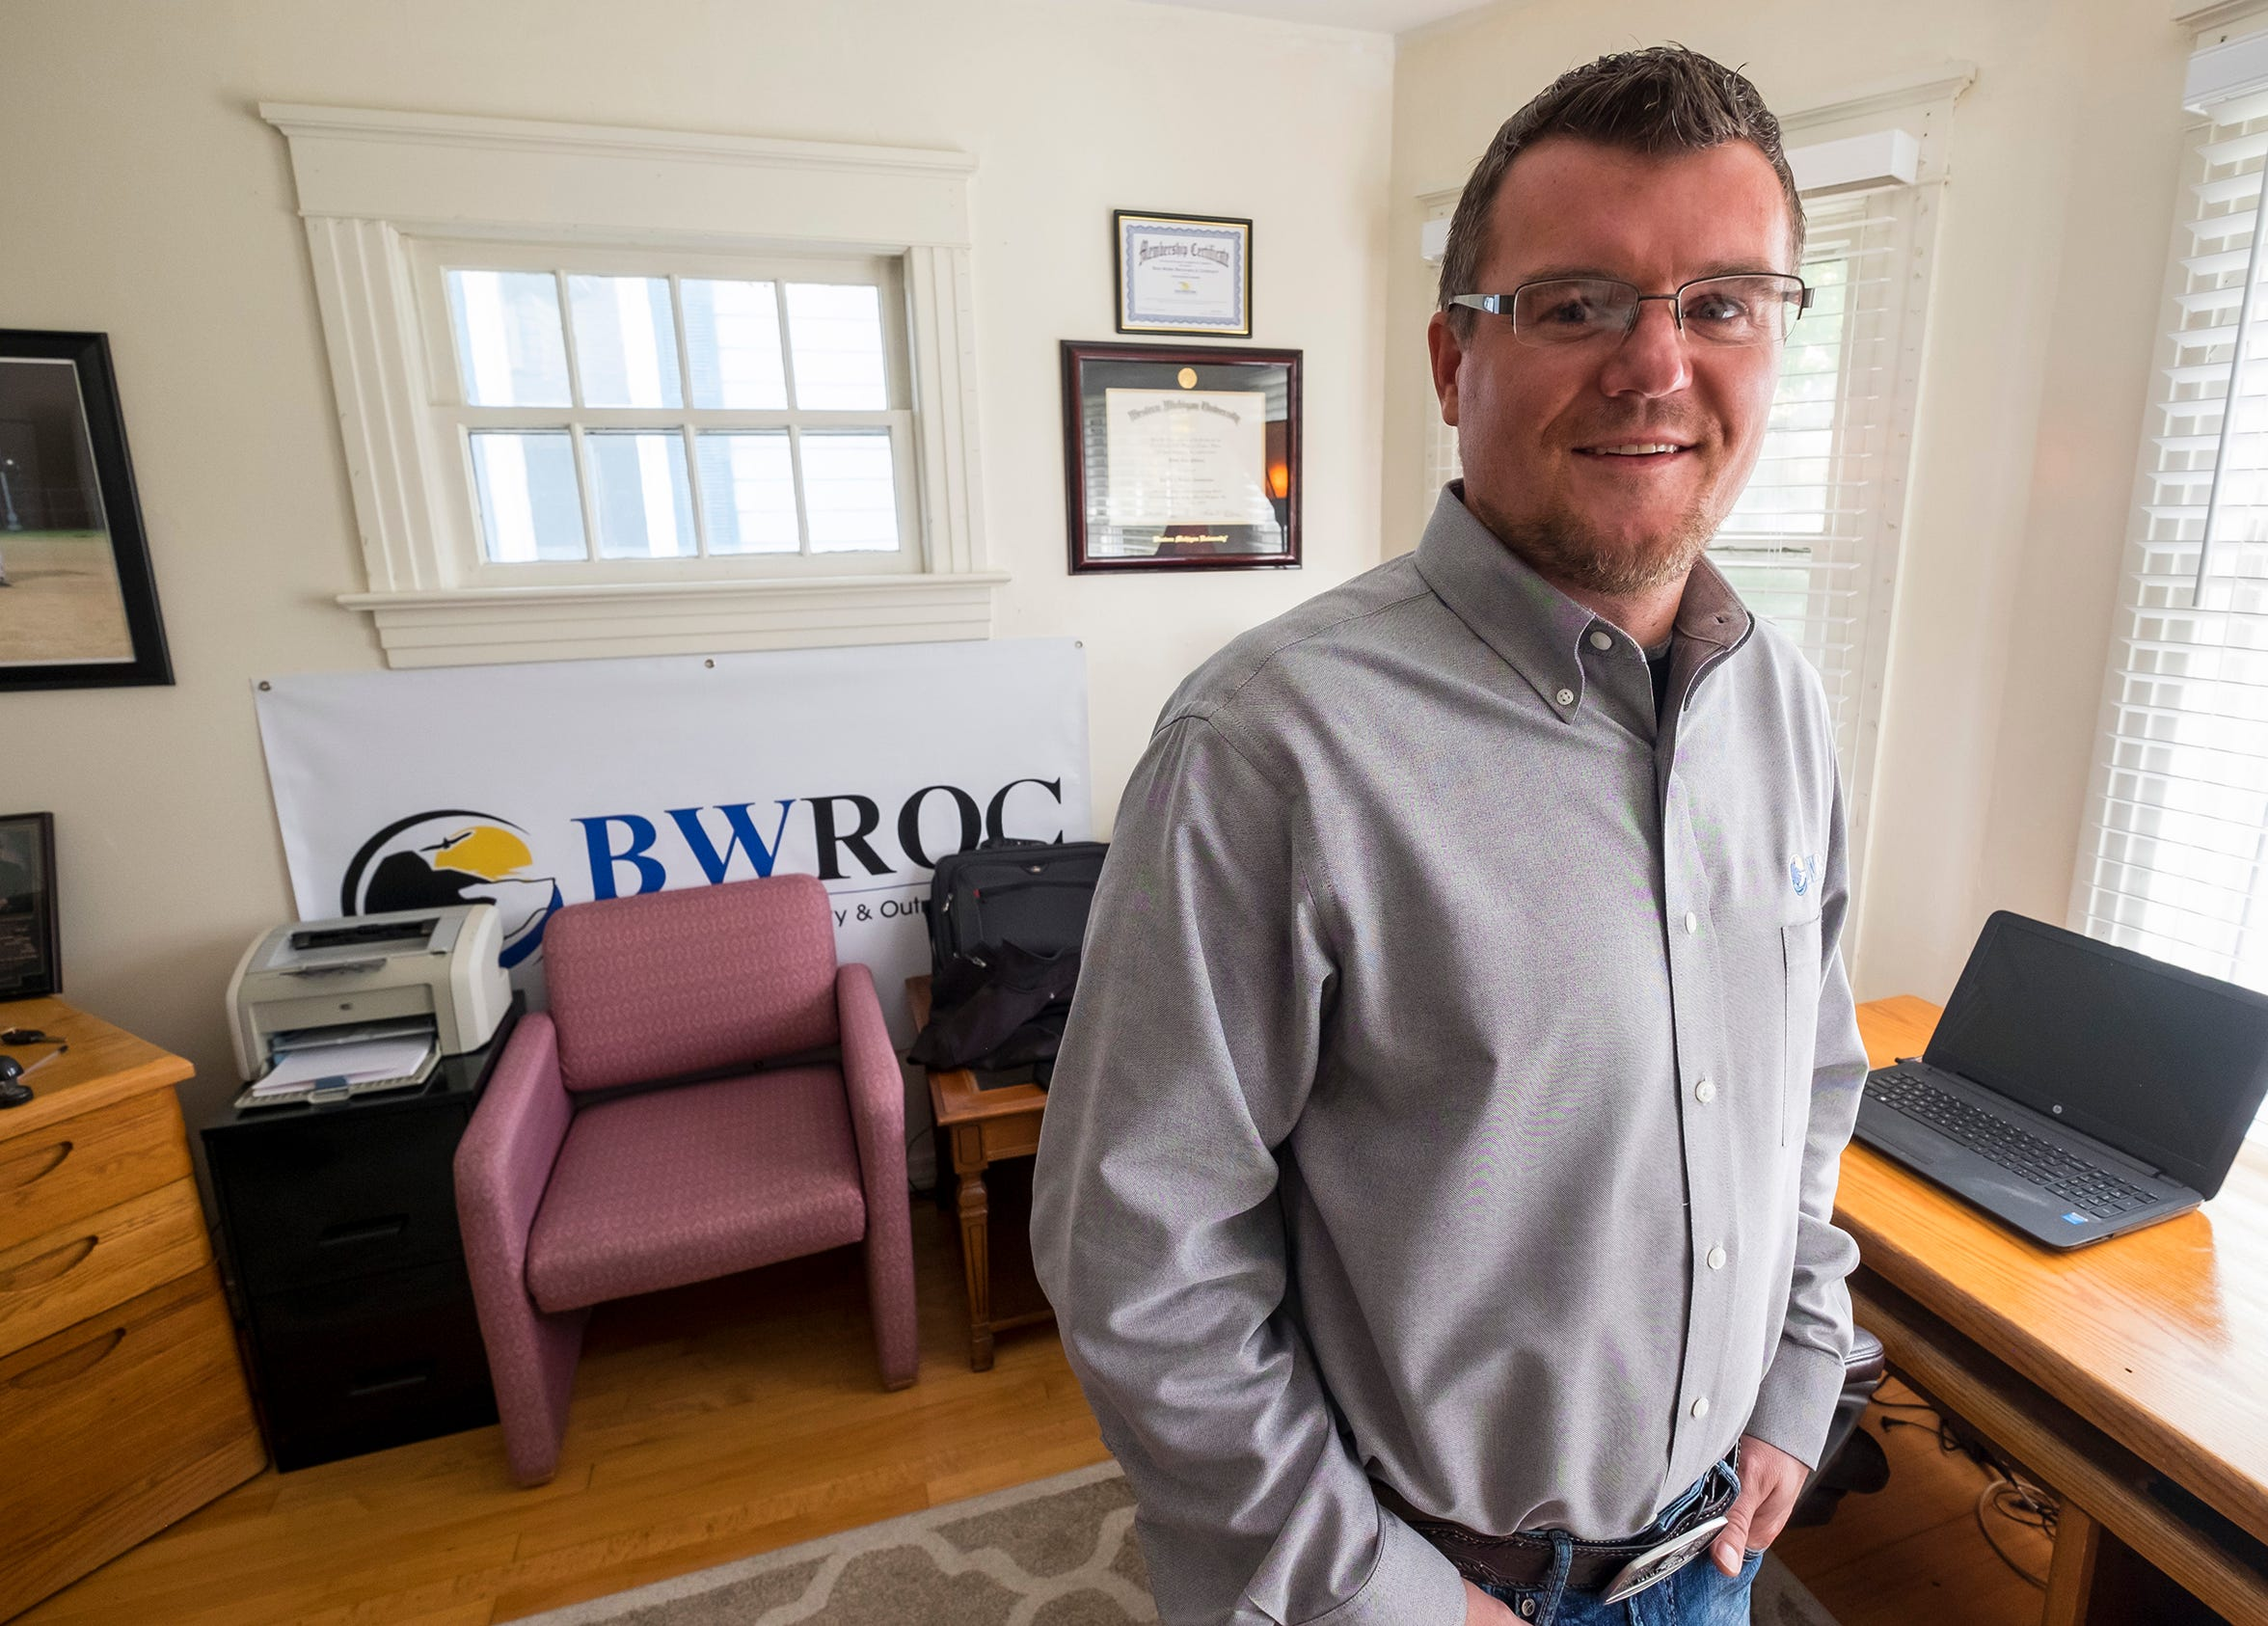 Patrick Patterson, manager at Blue Water Recovery and Outreach Center, in the BWROC office Tuesday, Oct. 30, 2018, at the Roost in Port Huron. He said BWROC hopes to move into a larger space.